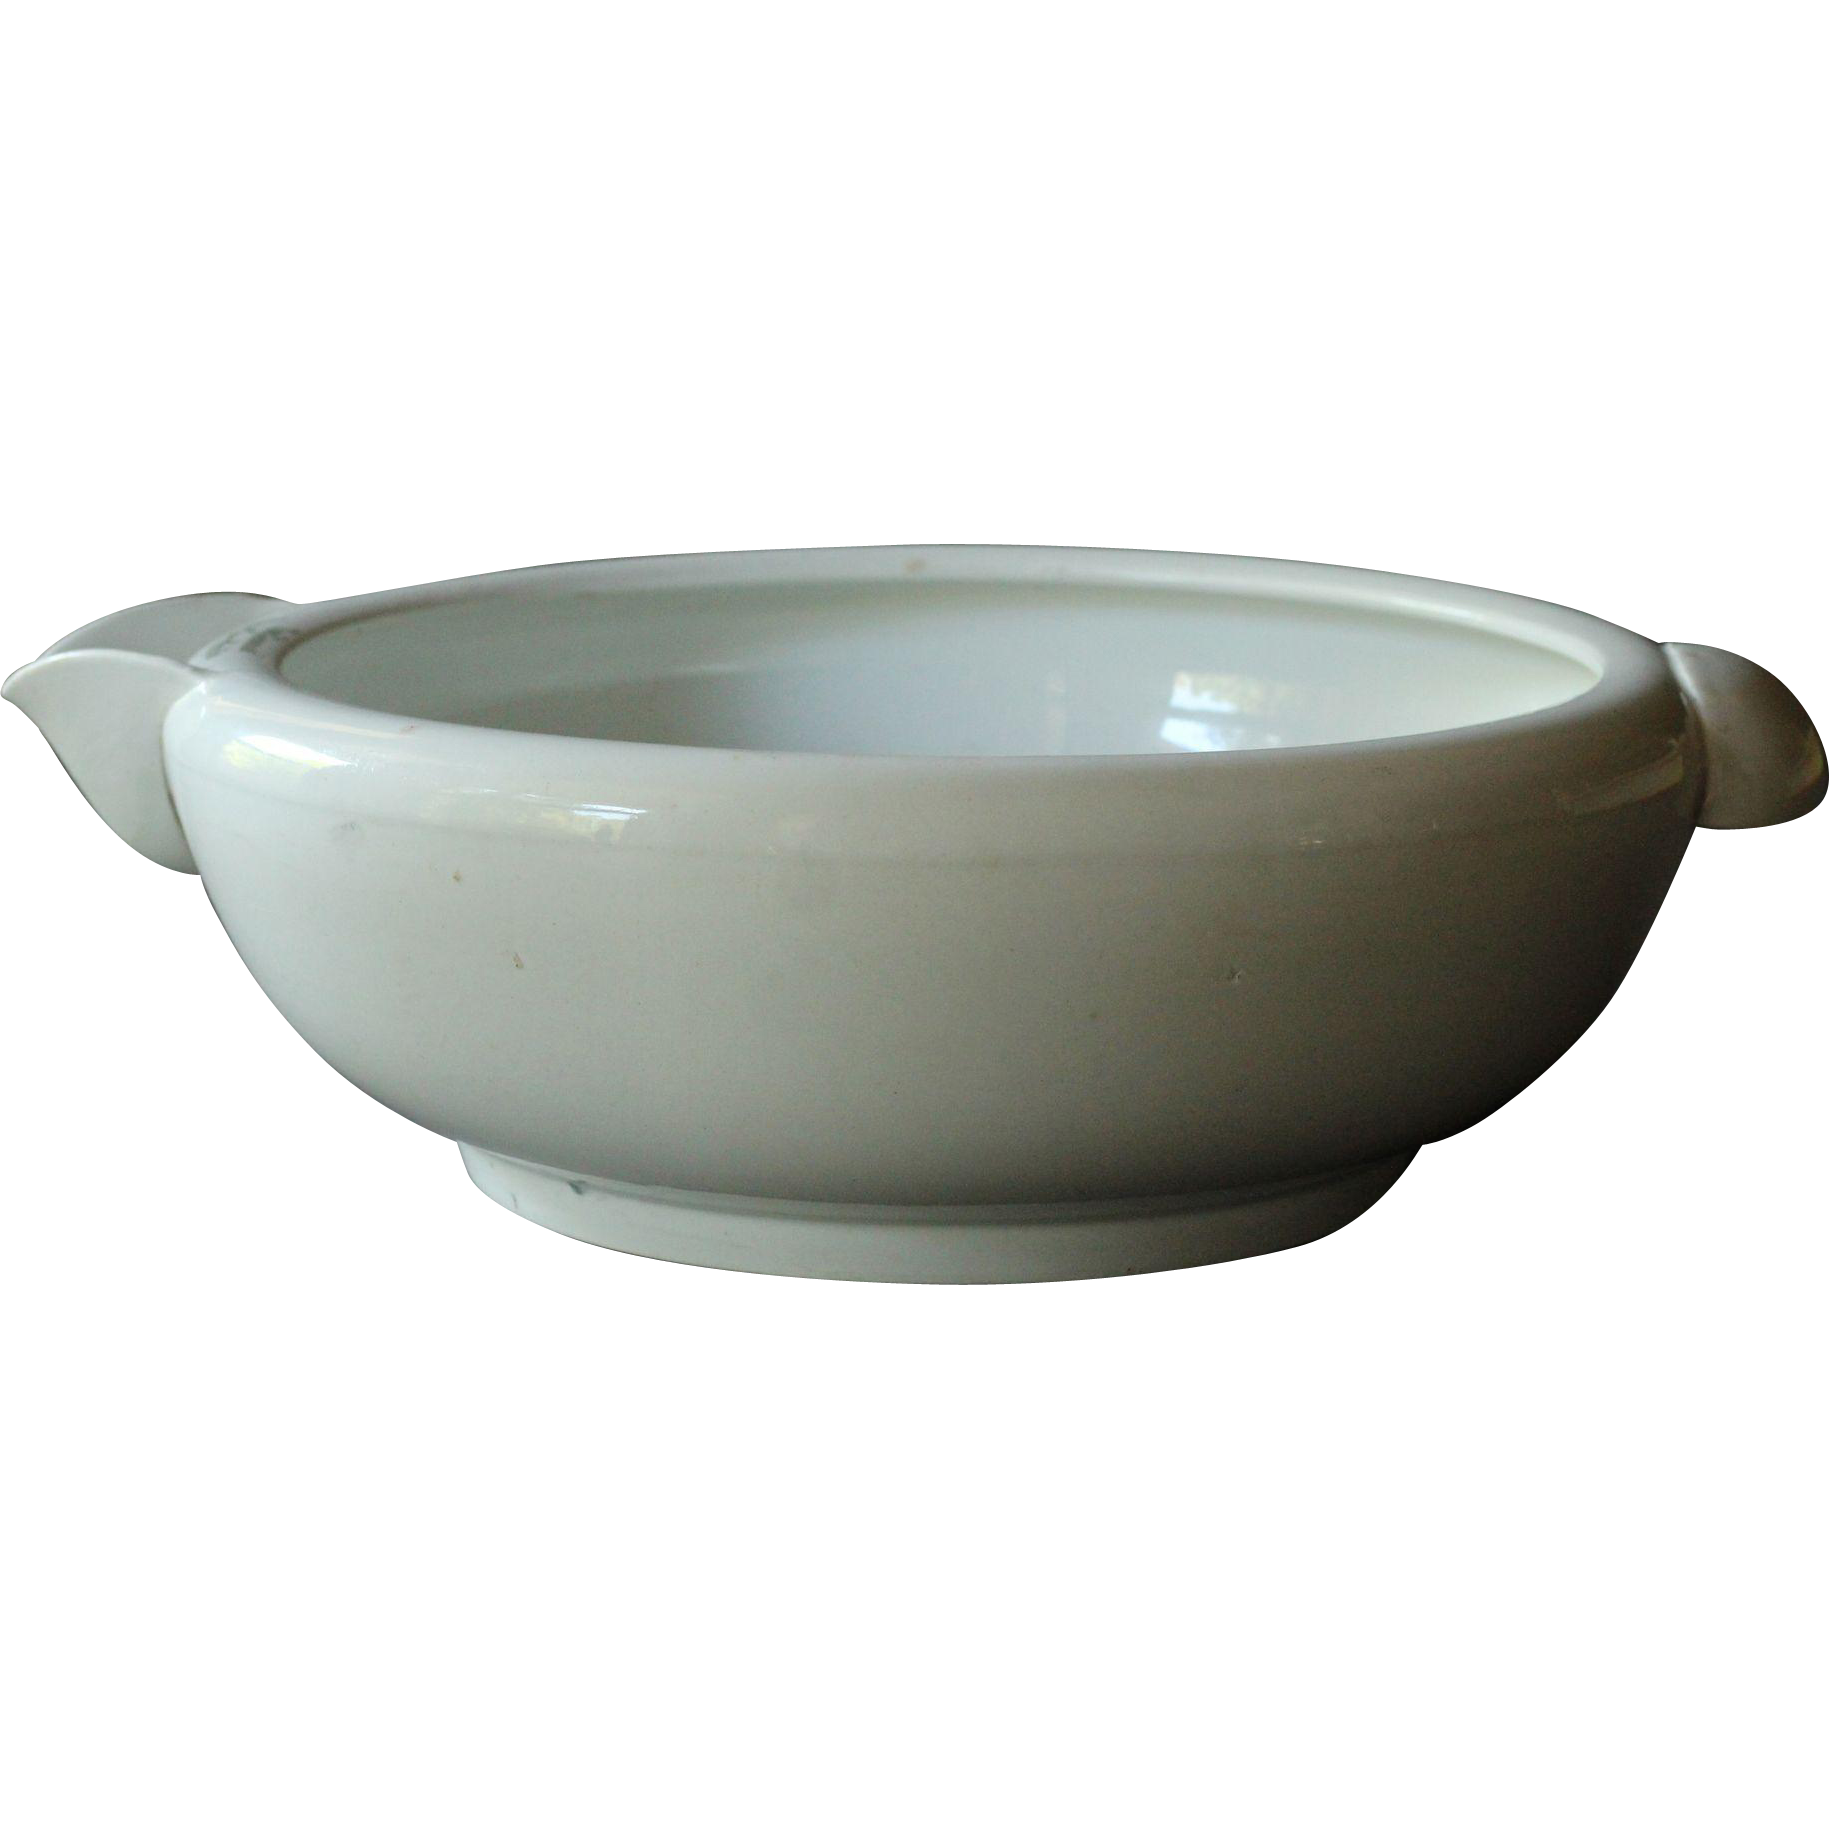 Antique English Grimwade Patent Safety Milk Bowl